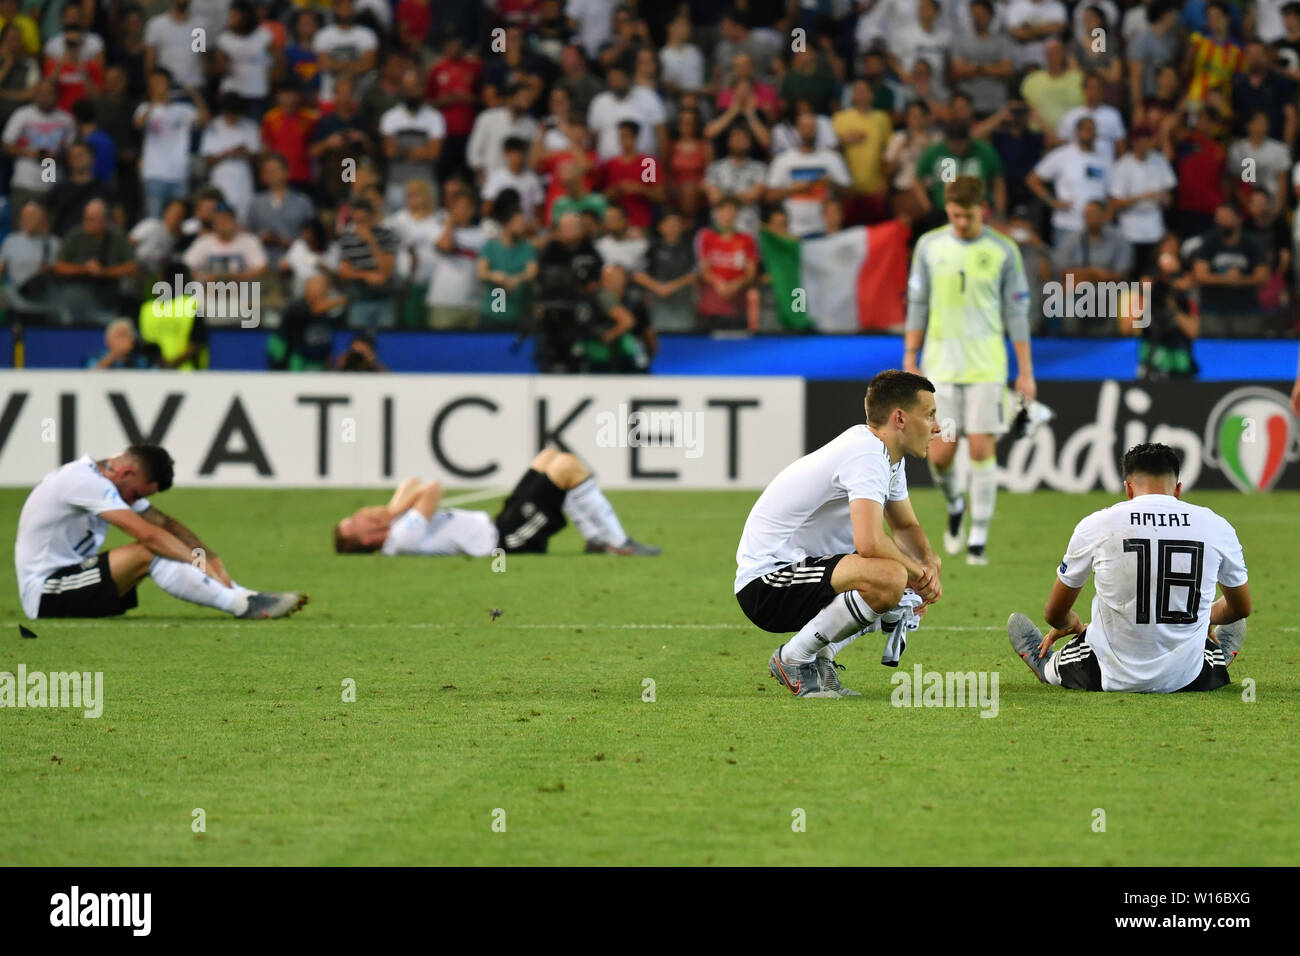 Udine, Italien. 30th June, 2019. German players after the final whistle on the ground destroyed, disappointment, frustrated, disappointed, frustratedriert, dejected, Spain (ESP) - Germany (GER) 2-1, at 30.06.2019 Stadio Friuli Udine. Football U-21, FINALE UEFA Under21 European Championship in Italy/SanMarino from 16.-30.06.2019. | Usage worldwide Credit: dpa/Alamy Live News - Stock Image